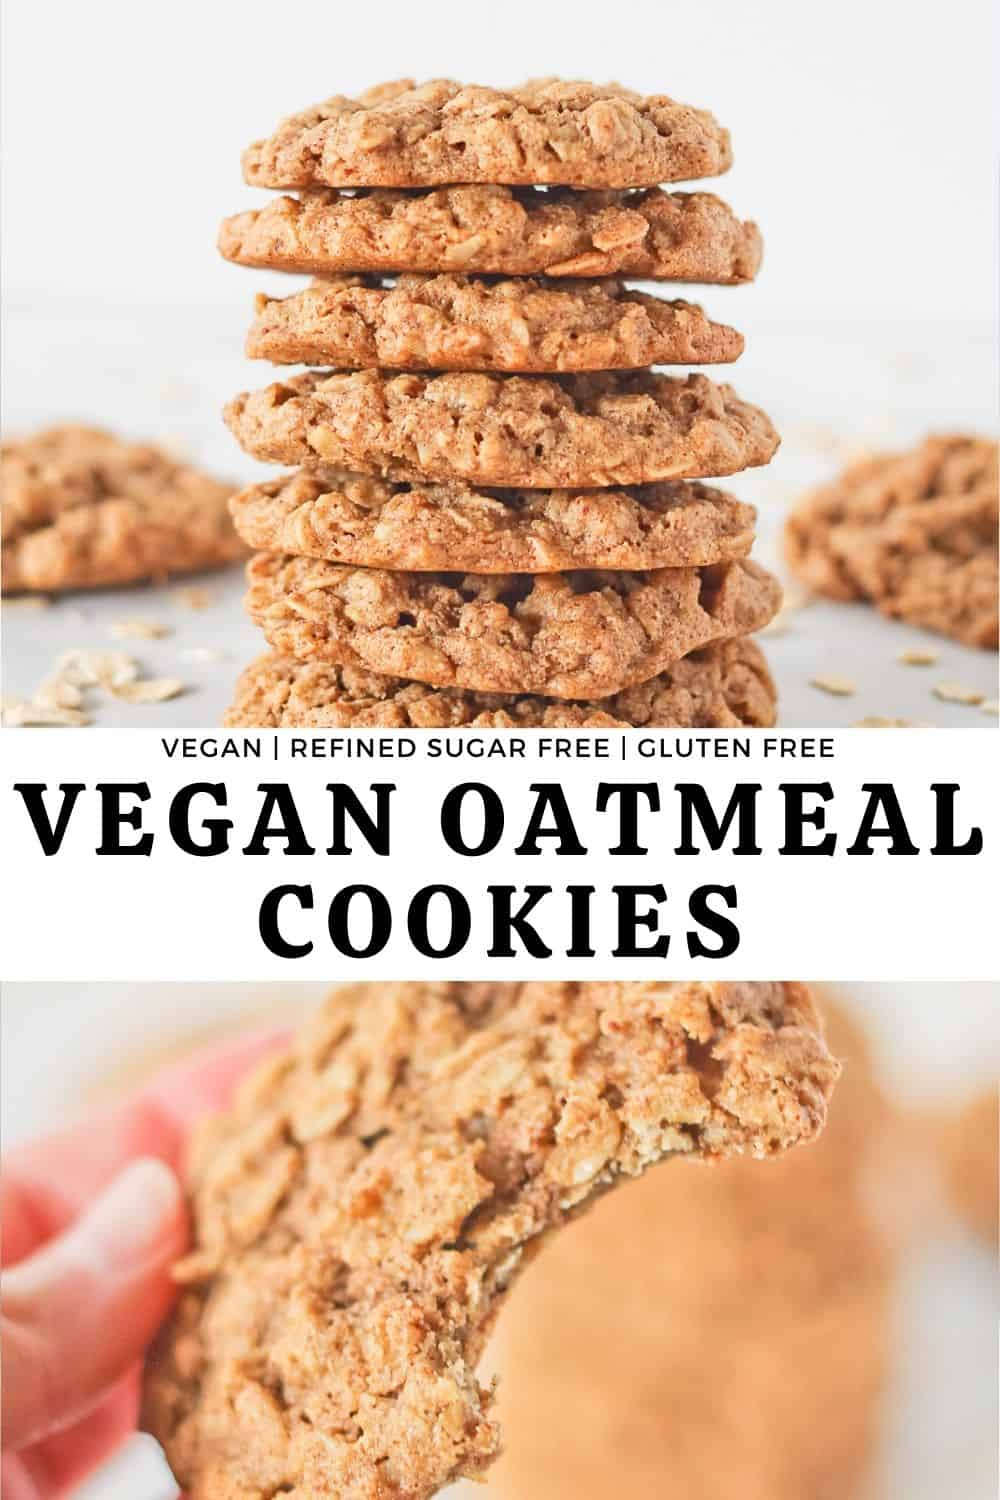 Combined picture of Vegan Oatmeal Cookies in a cookie stack and with a bite taken from one.